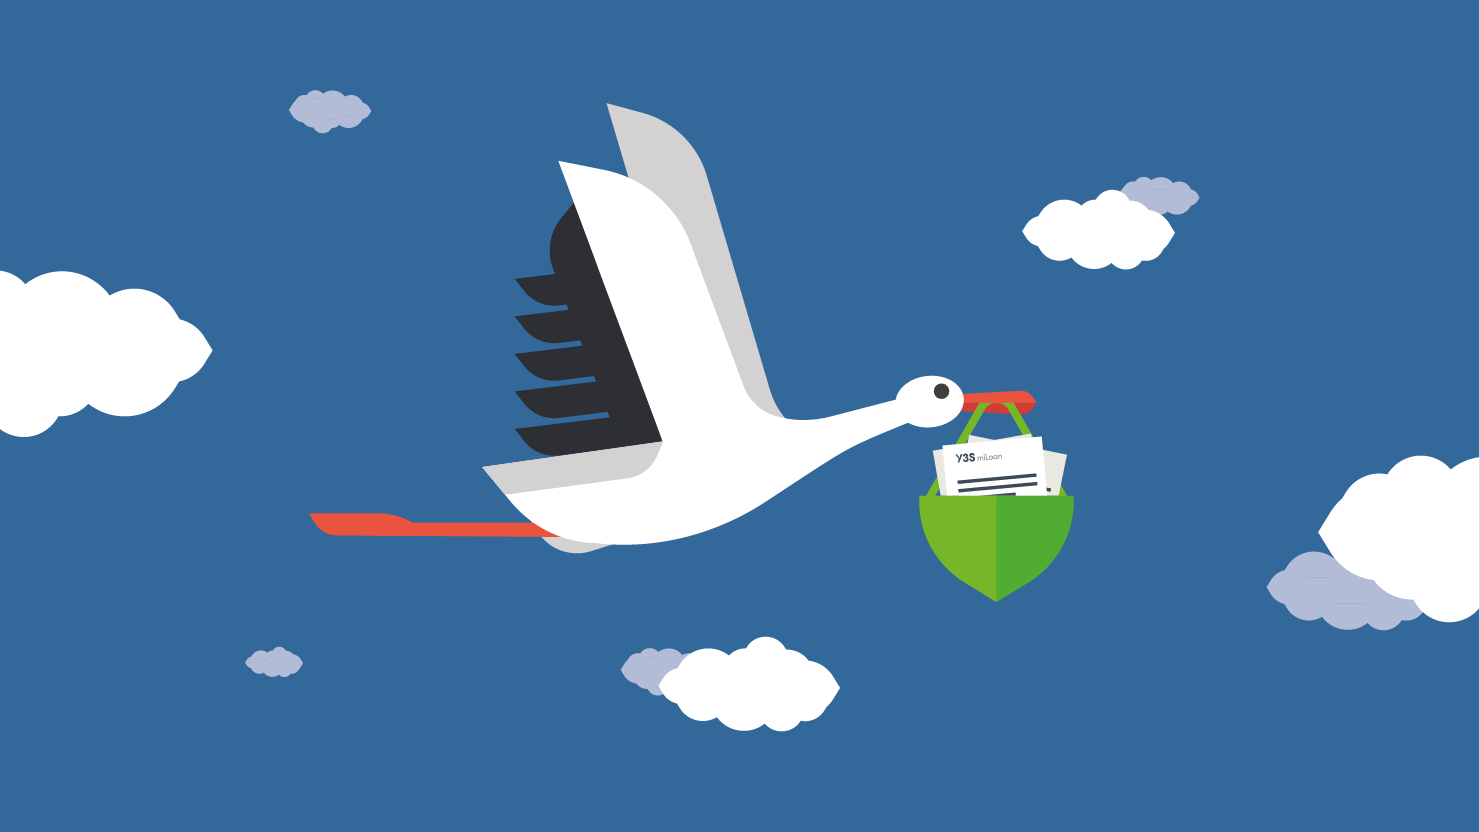 Illustration of a stork carrying documents like a baby